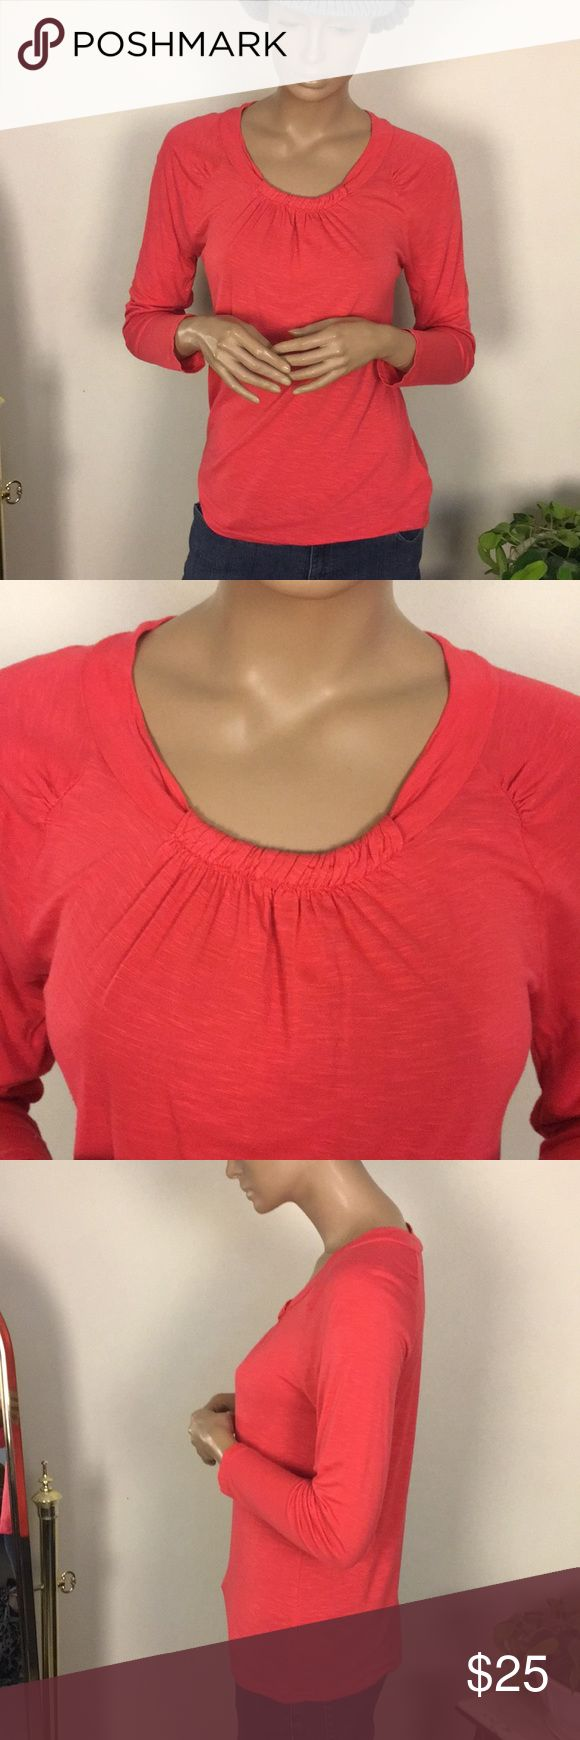 """Kenneth Cole Knit Top Excellent condition!! Great detail in collar and at shoulders! 100% Viscose. Length from shoulder to bottom is 24"""" chest measurement 17 1/2"""". Color is like a water Mellon color. Kenneth Cole Tops Tees - Long Sleeve"""